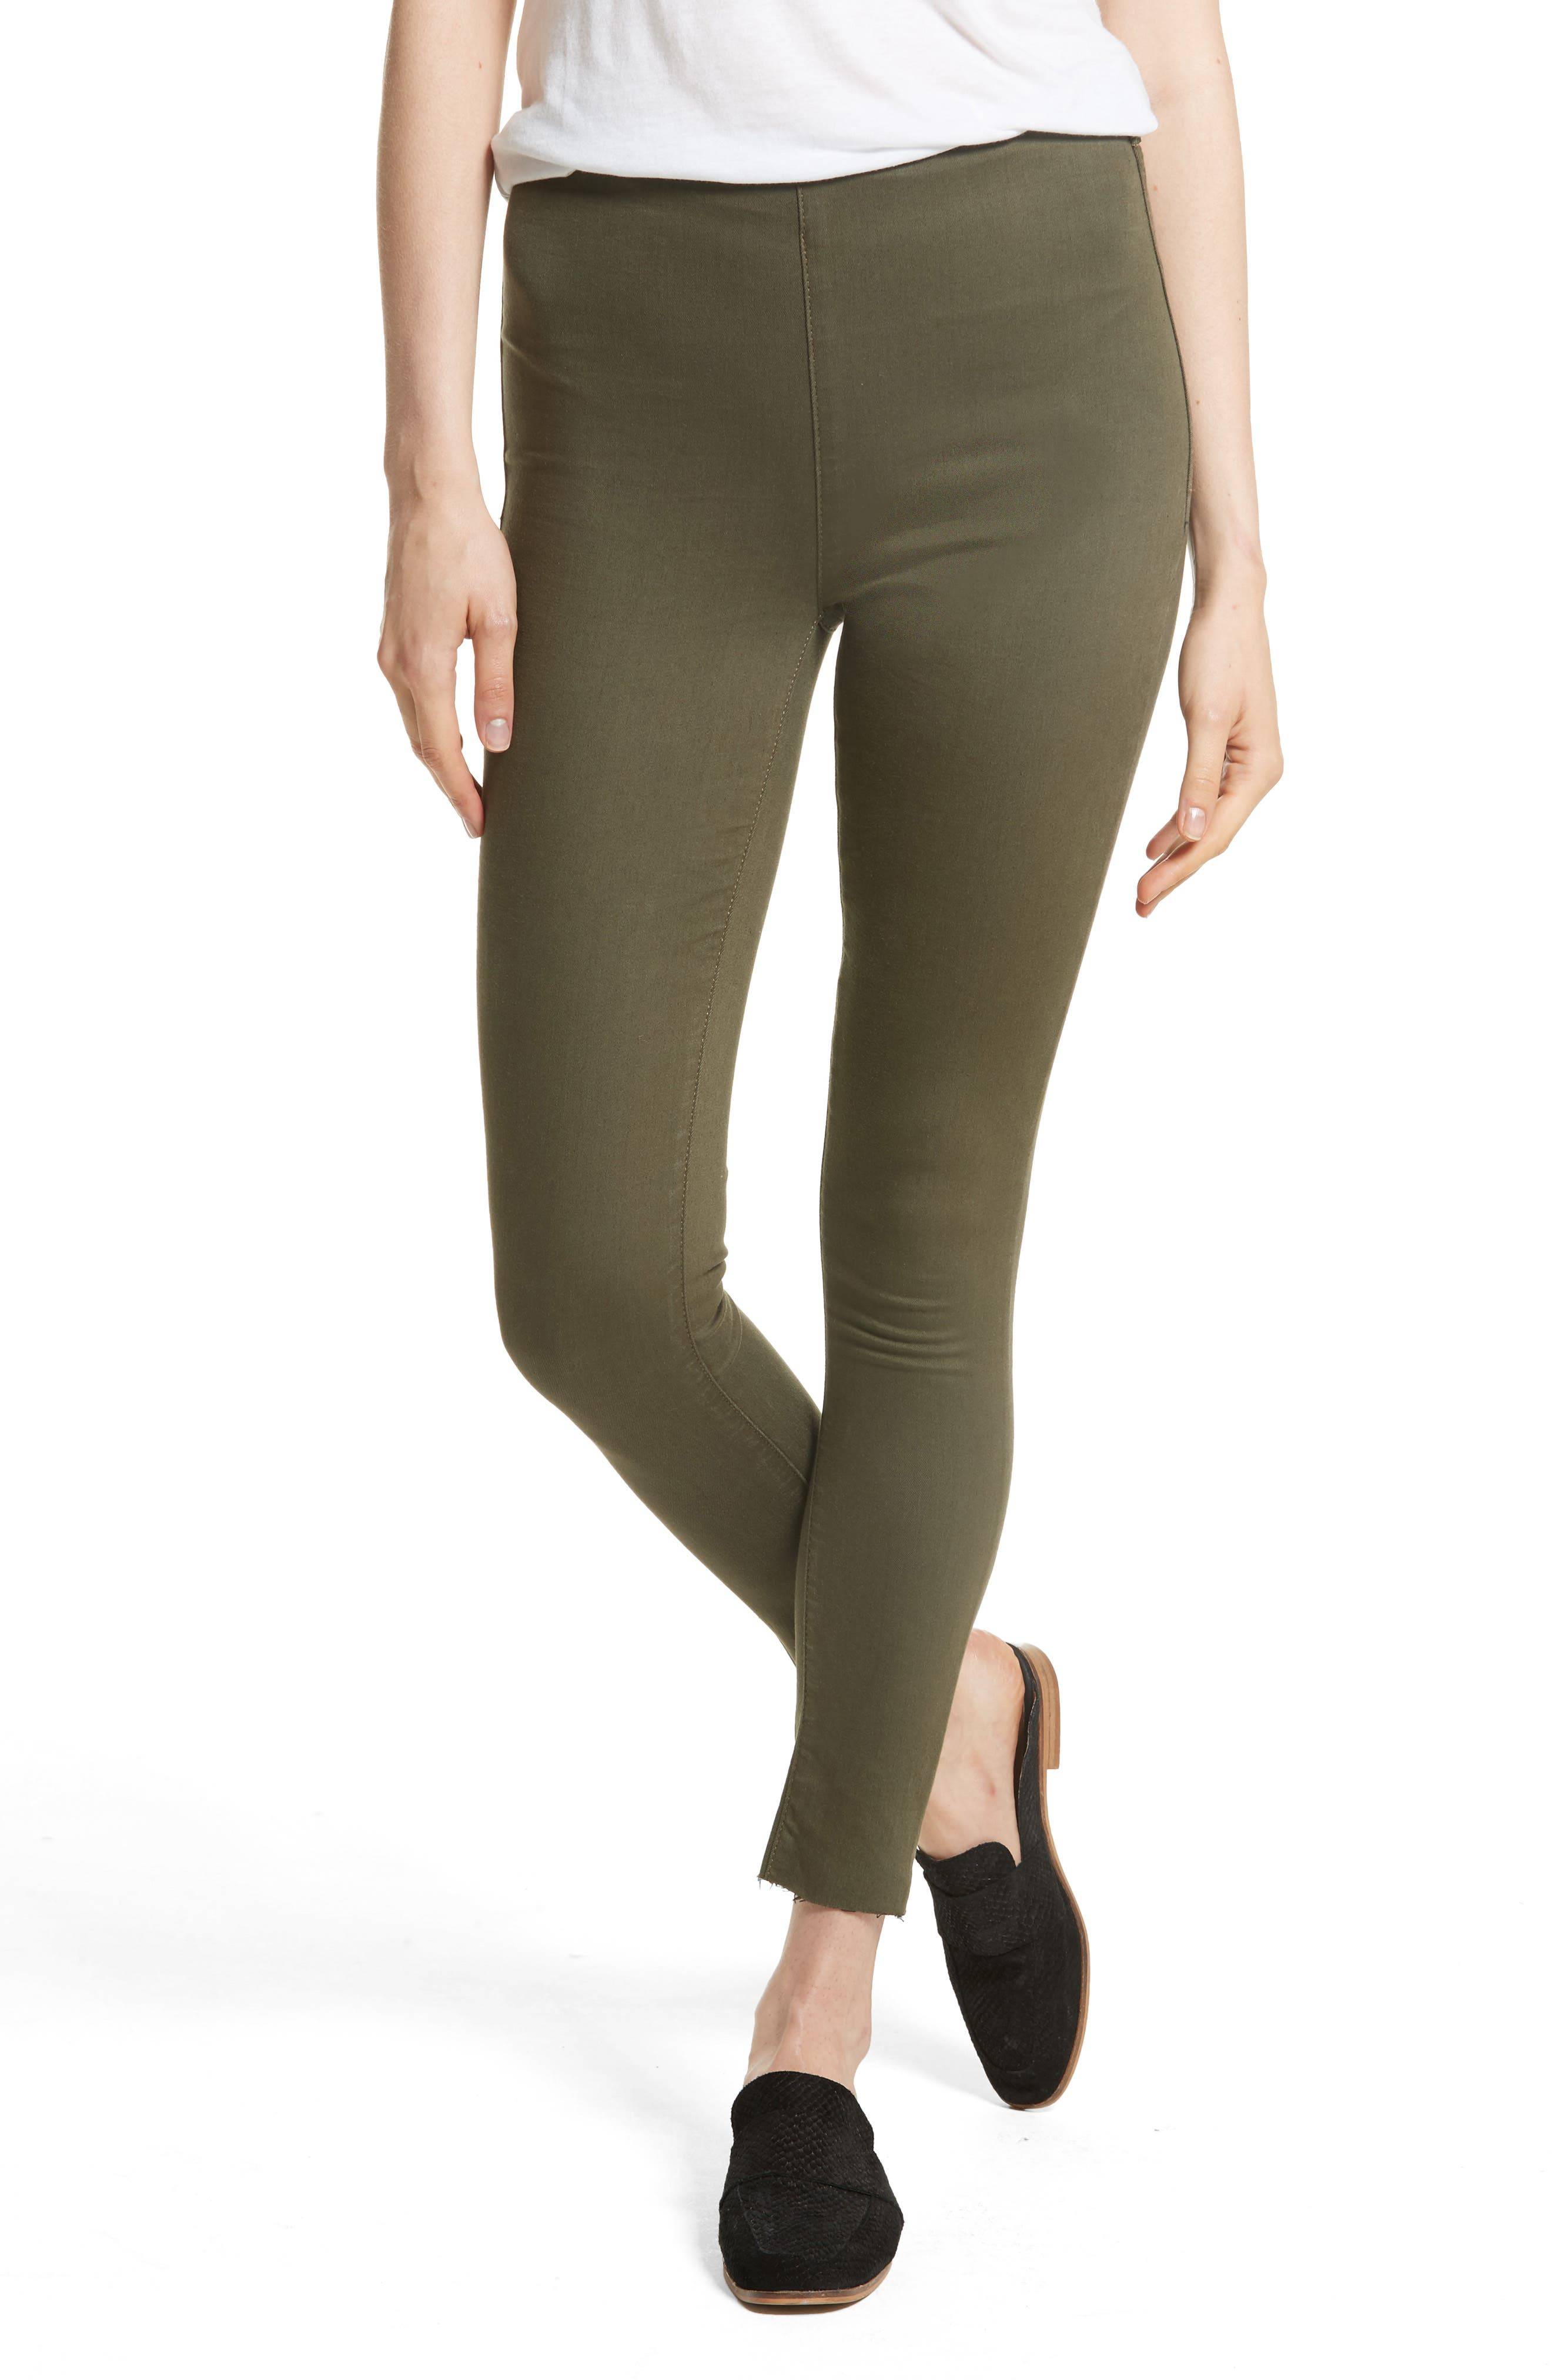 Easy Goes It Leggings,                         Main,                         color, Moss